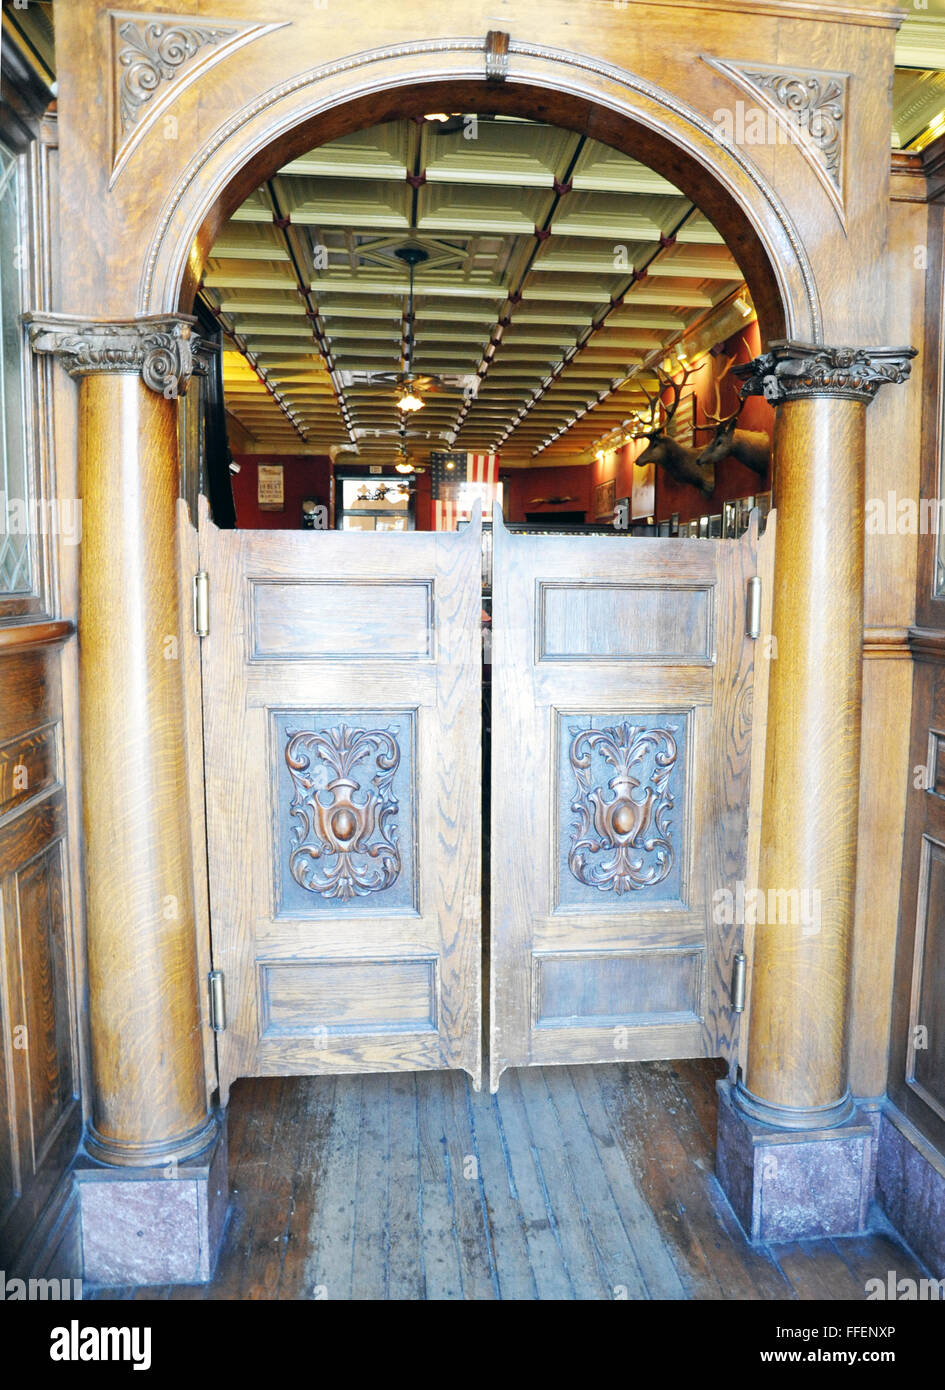 Bar Swinging Doors Jerome Arizona.Found Richest Copper Mines Ever In Jerome Between Sedona And PrescottCopper Gold Silver Mine : swinging doors spokane - pezcame.com